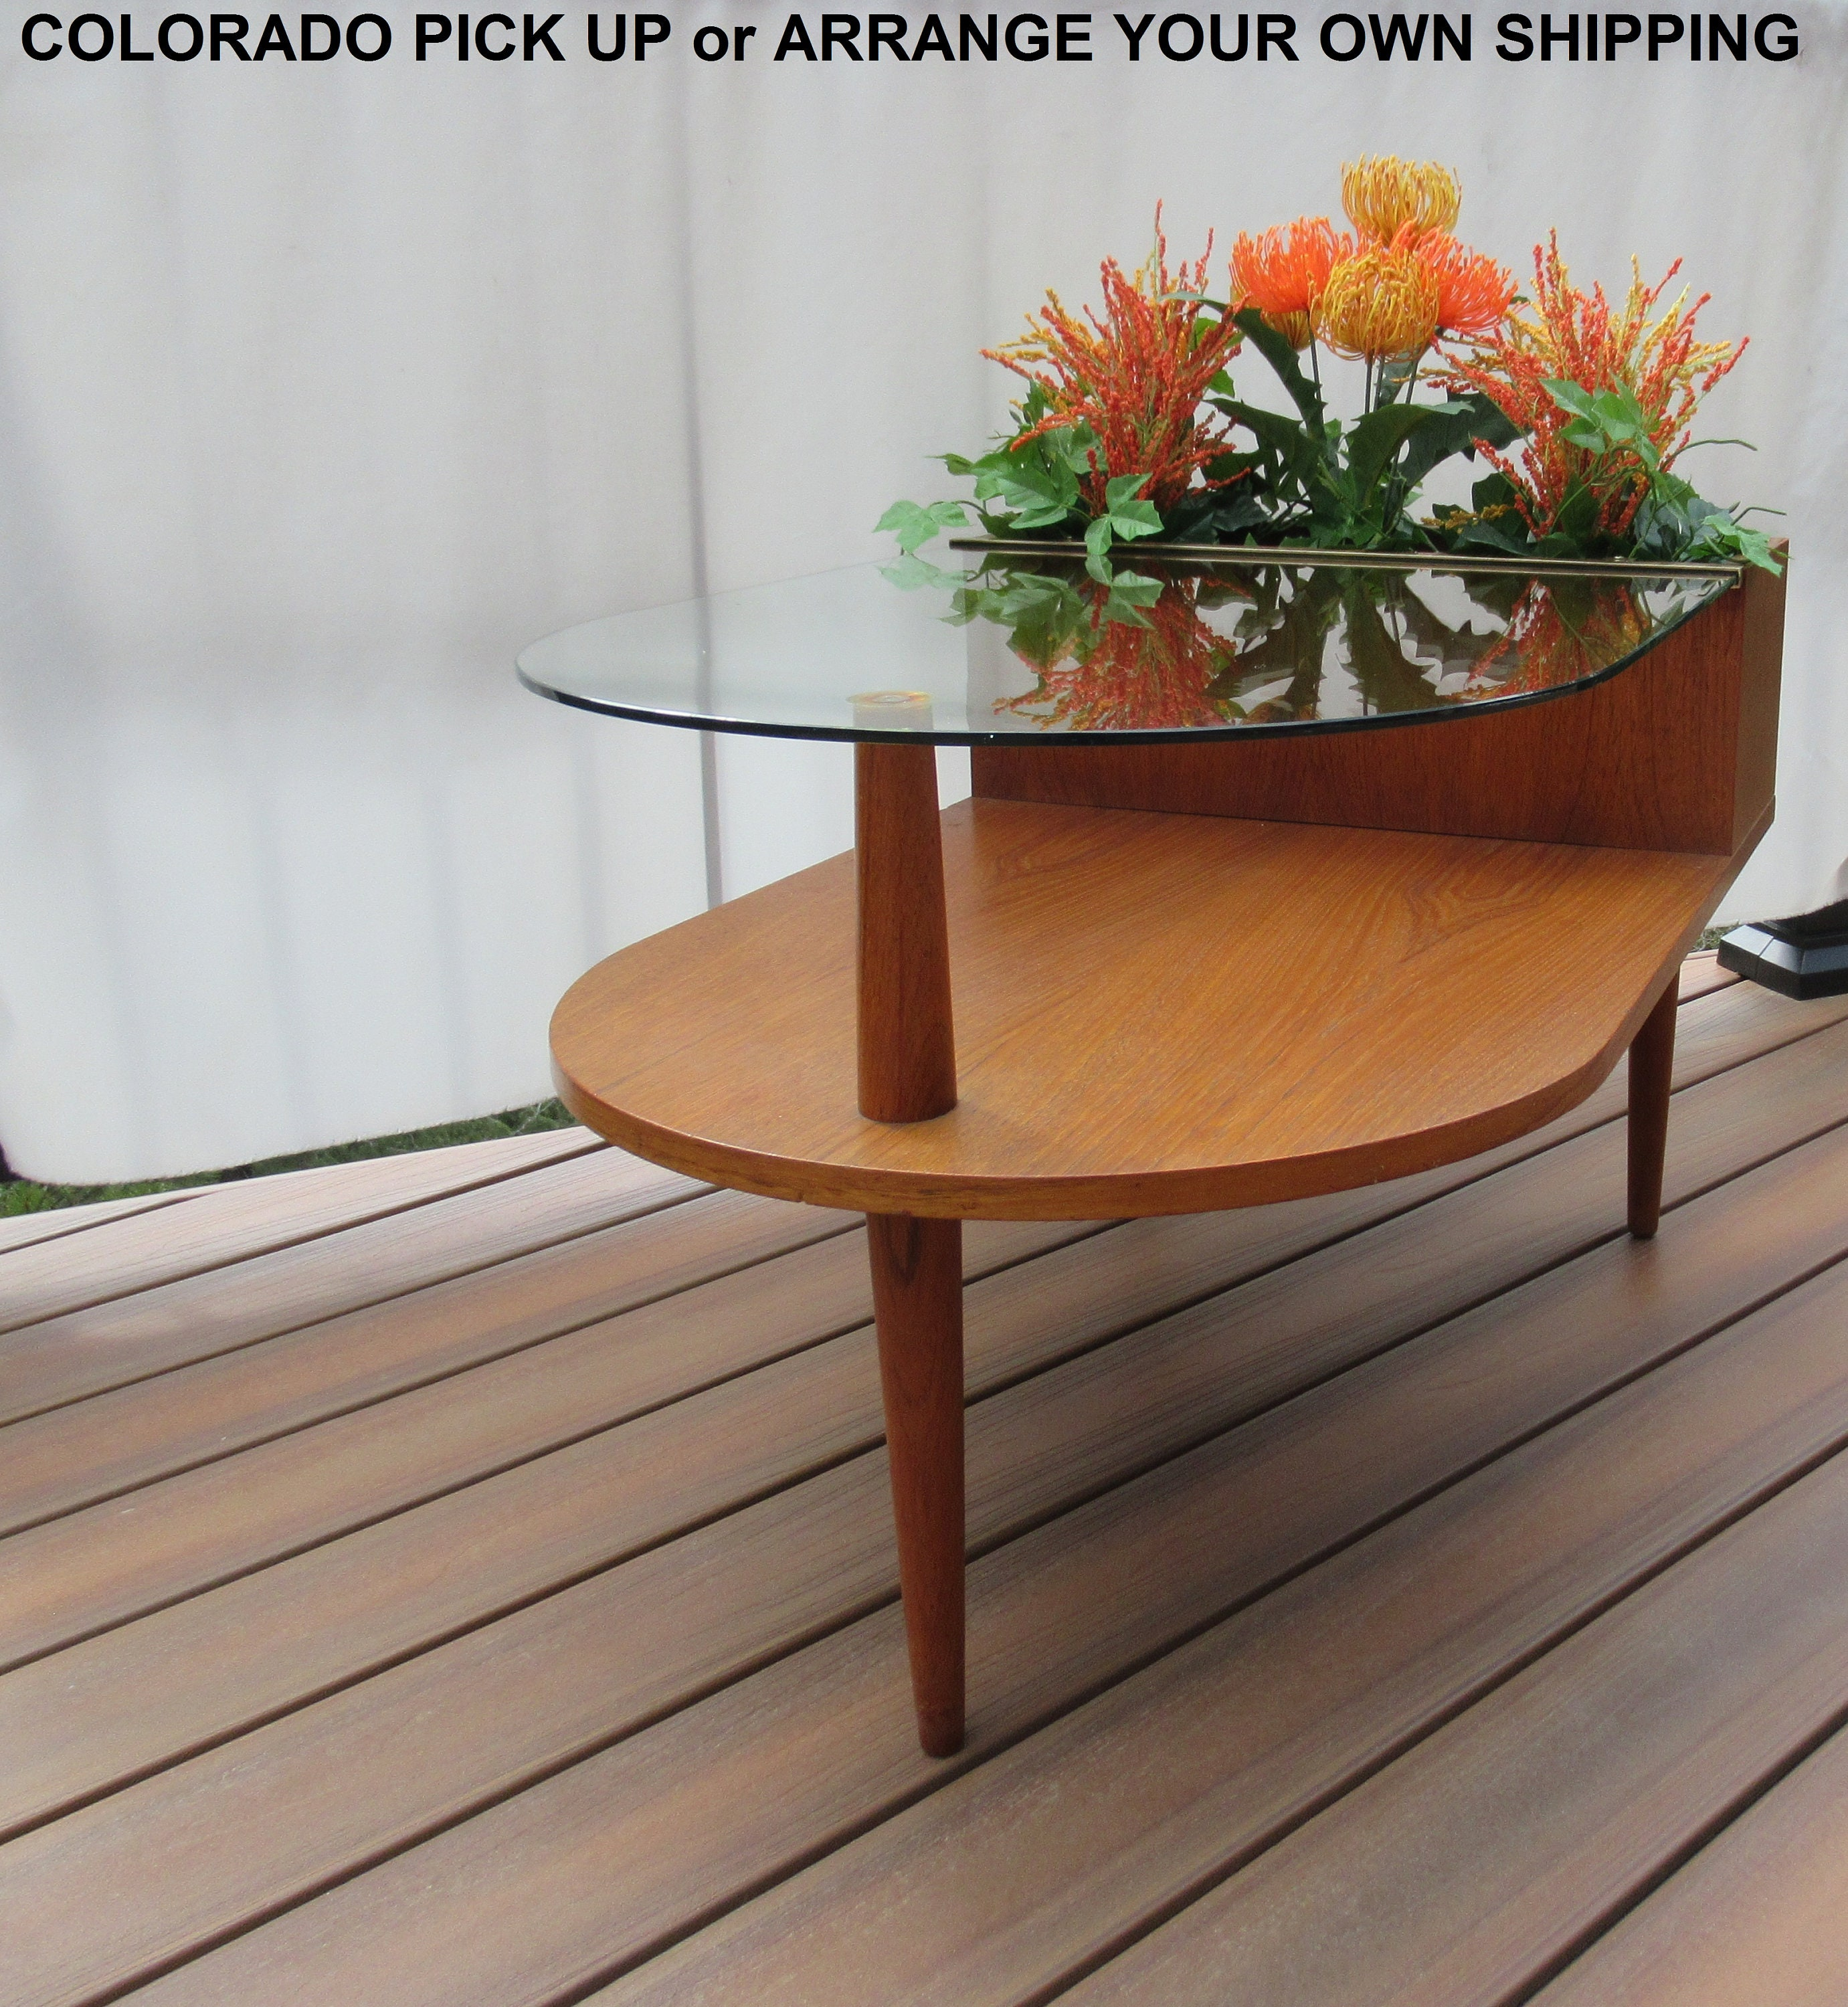 Midcentury Planter End Table By Cfc Silkeborg Danish Midcentury End Table With Planter Box Johannes Andersen Designed Danish End Table